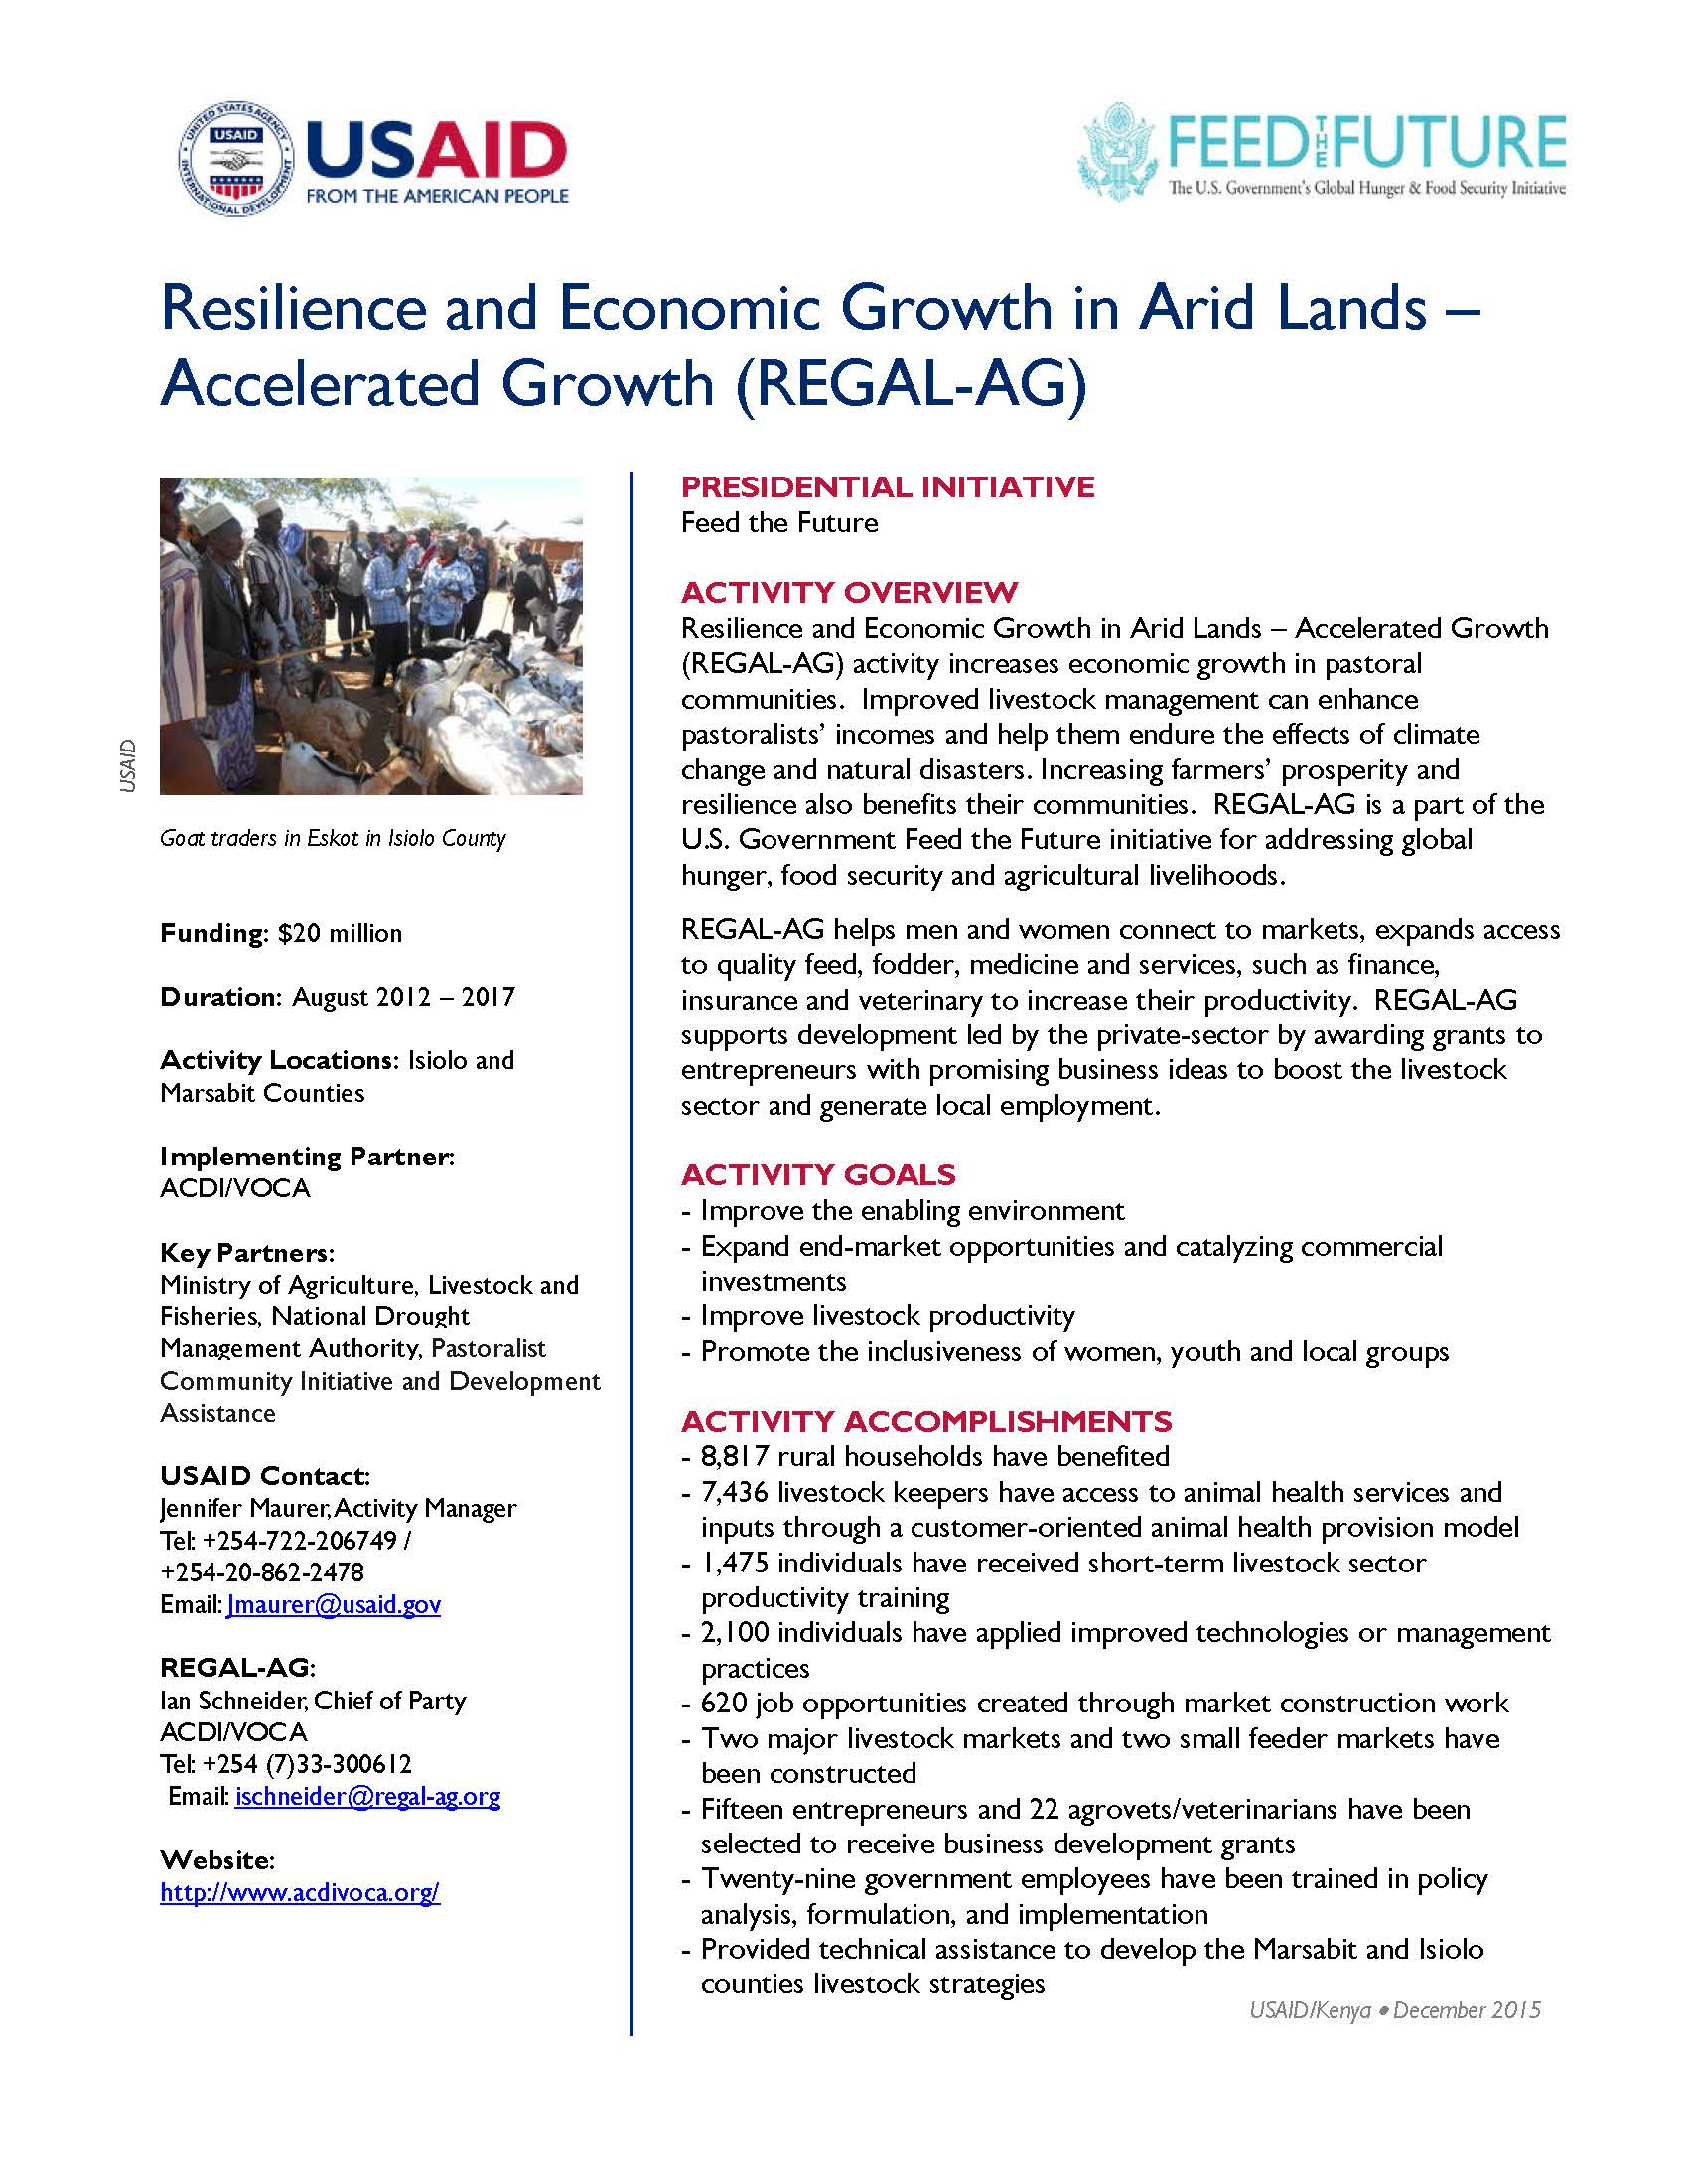 Resilience and Economic Growth in Arid Lands – Accelerated Growth (REGAL-AG)